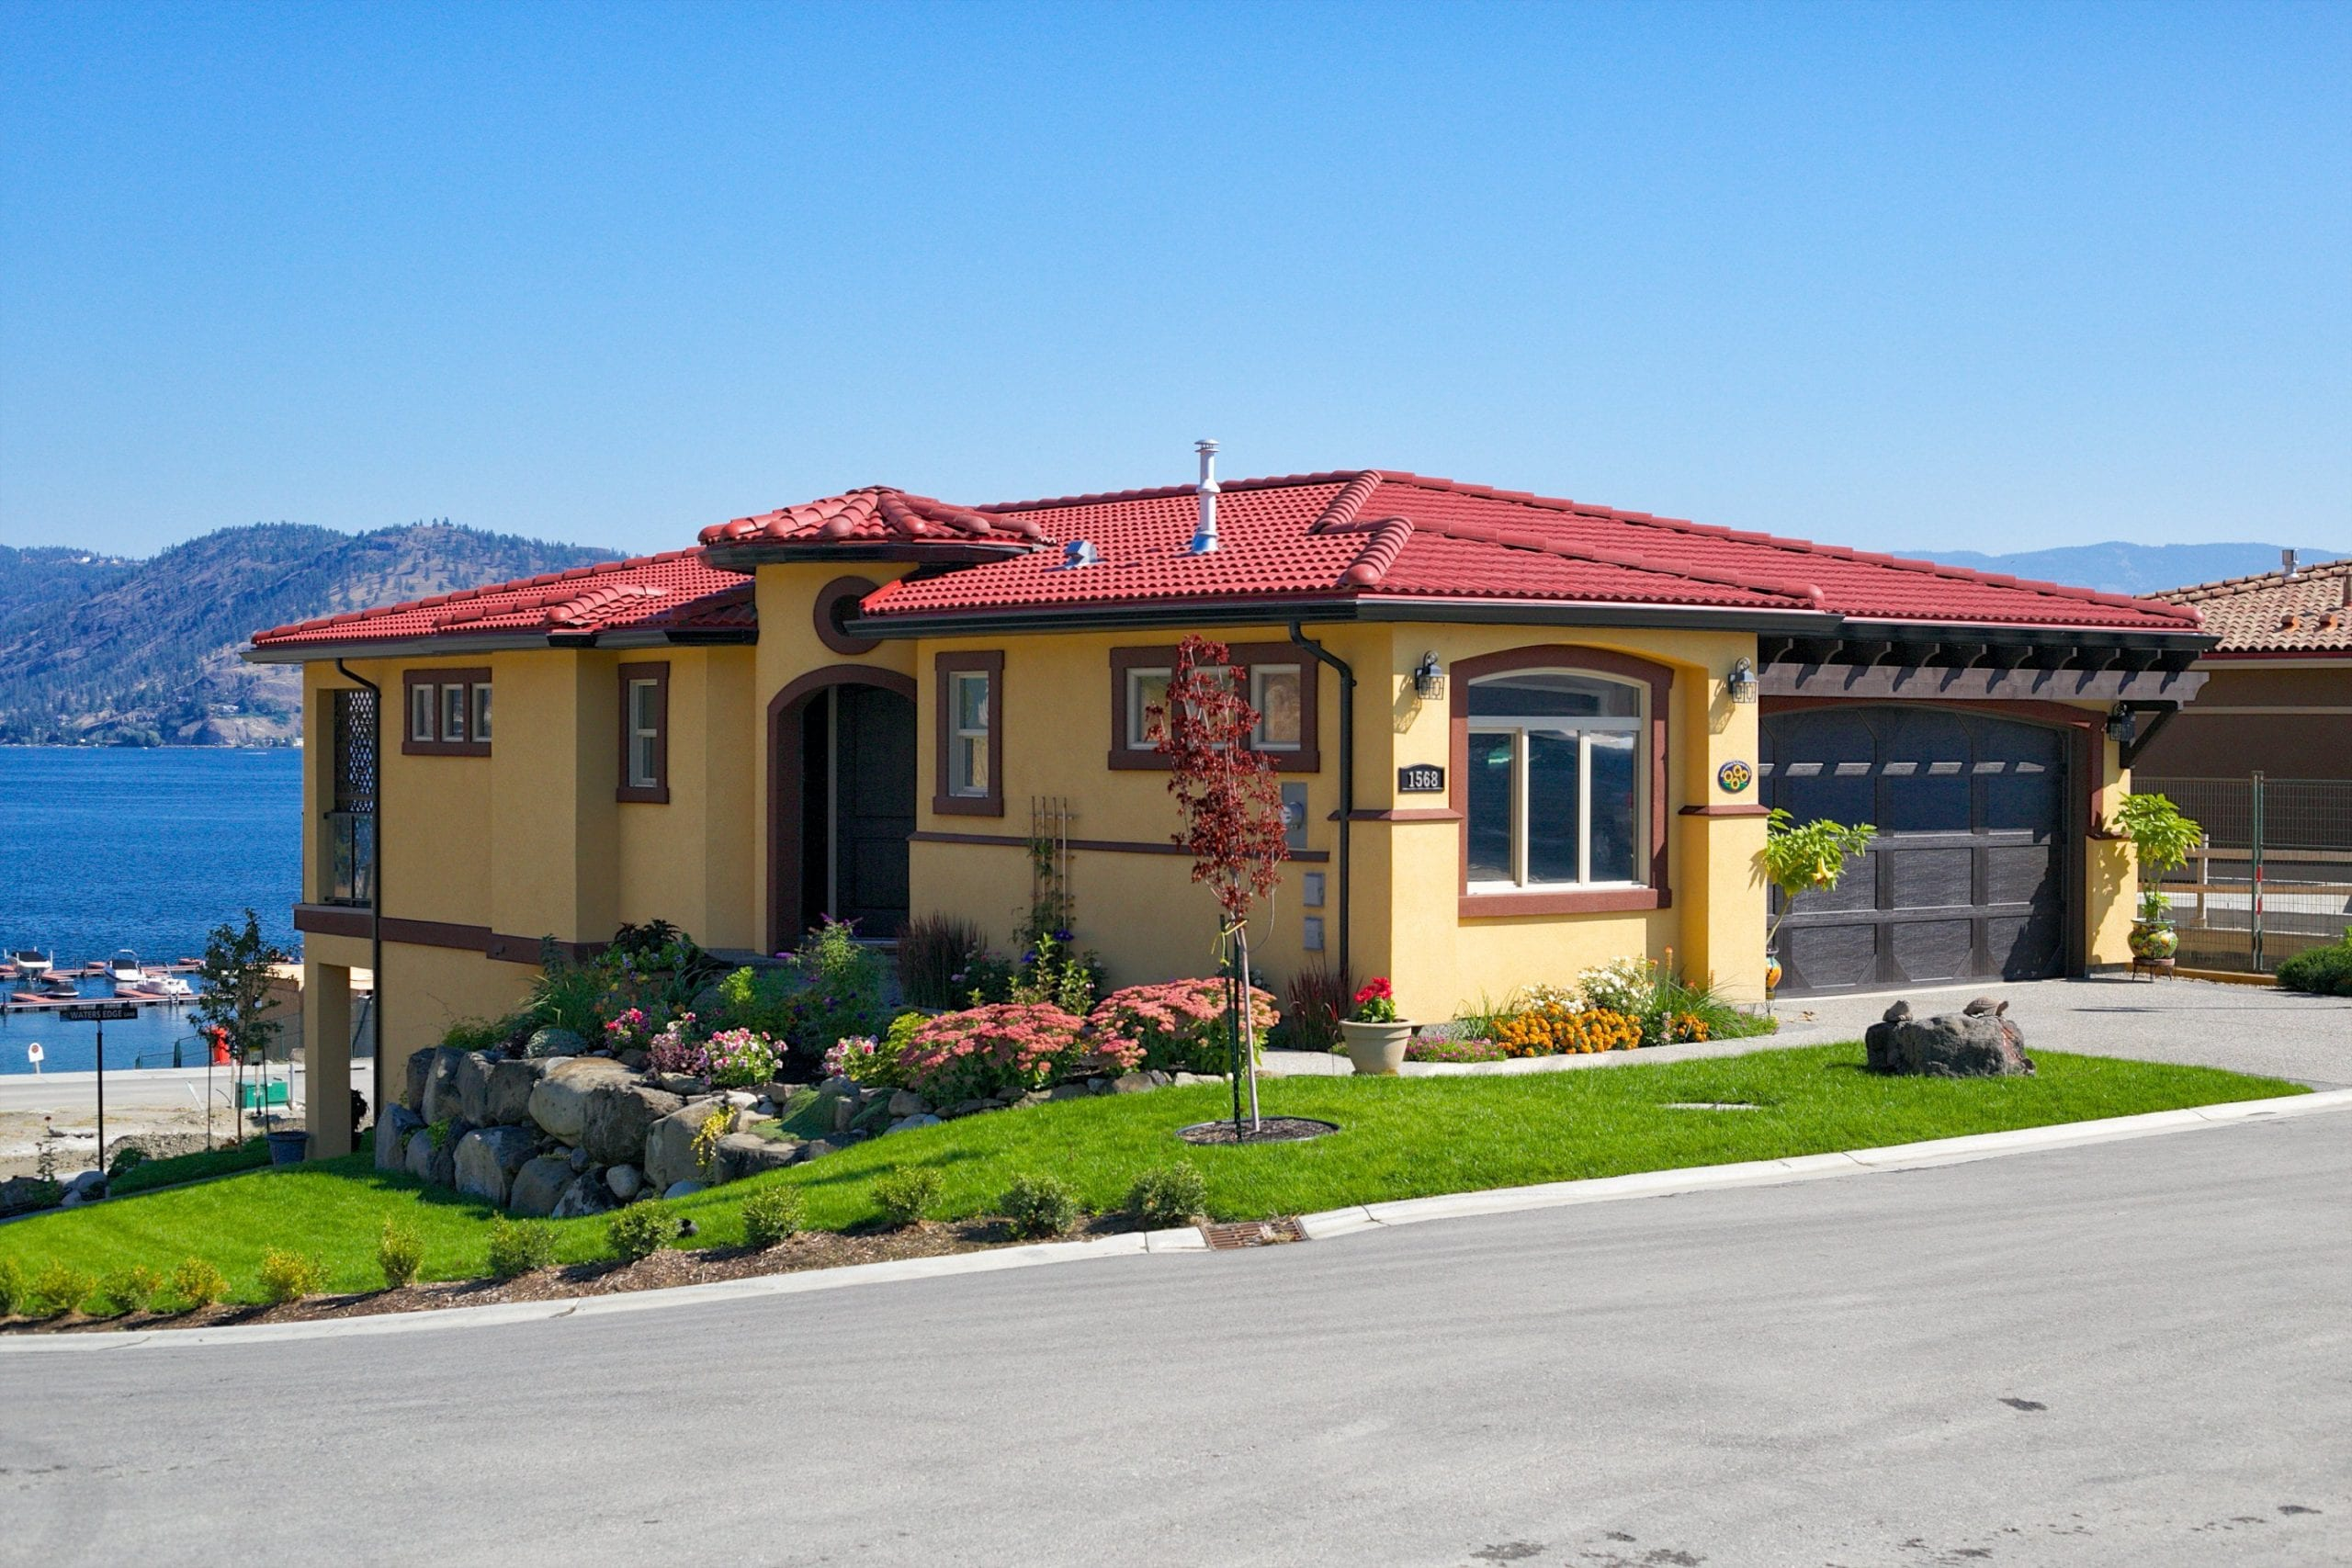 exterior shot of chardonnay roofed home with parmesan main body overlooking okanagan lake on a clear day